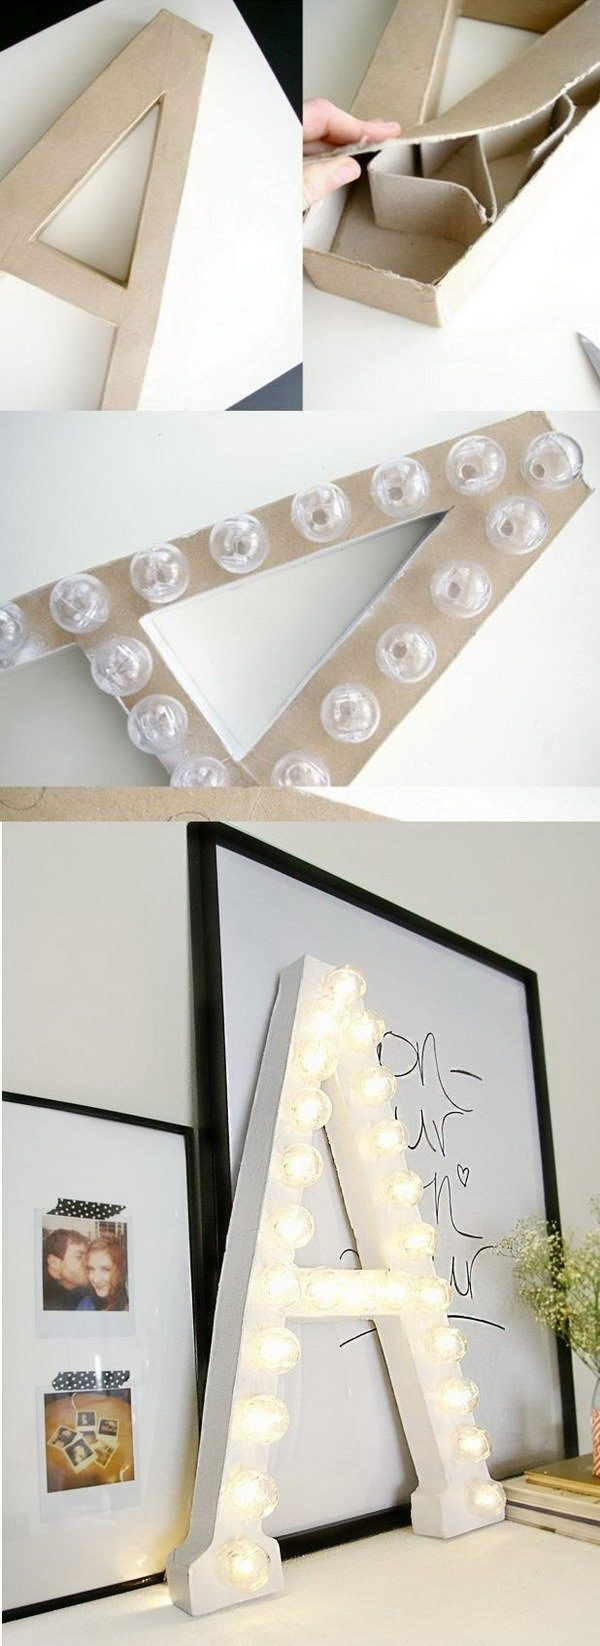 Cool DIY Ideas U0026 Tutorials For Teenage Girlsu0027 Bedroom Decoration